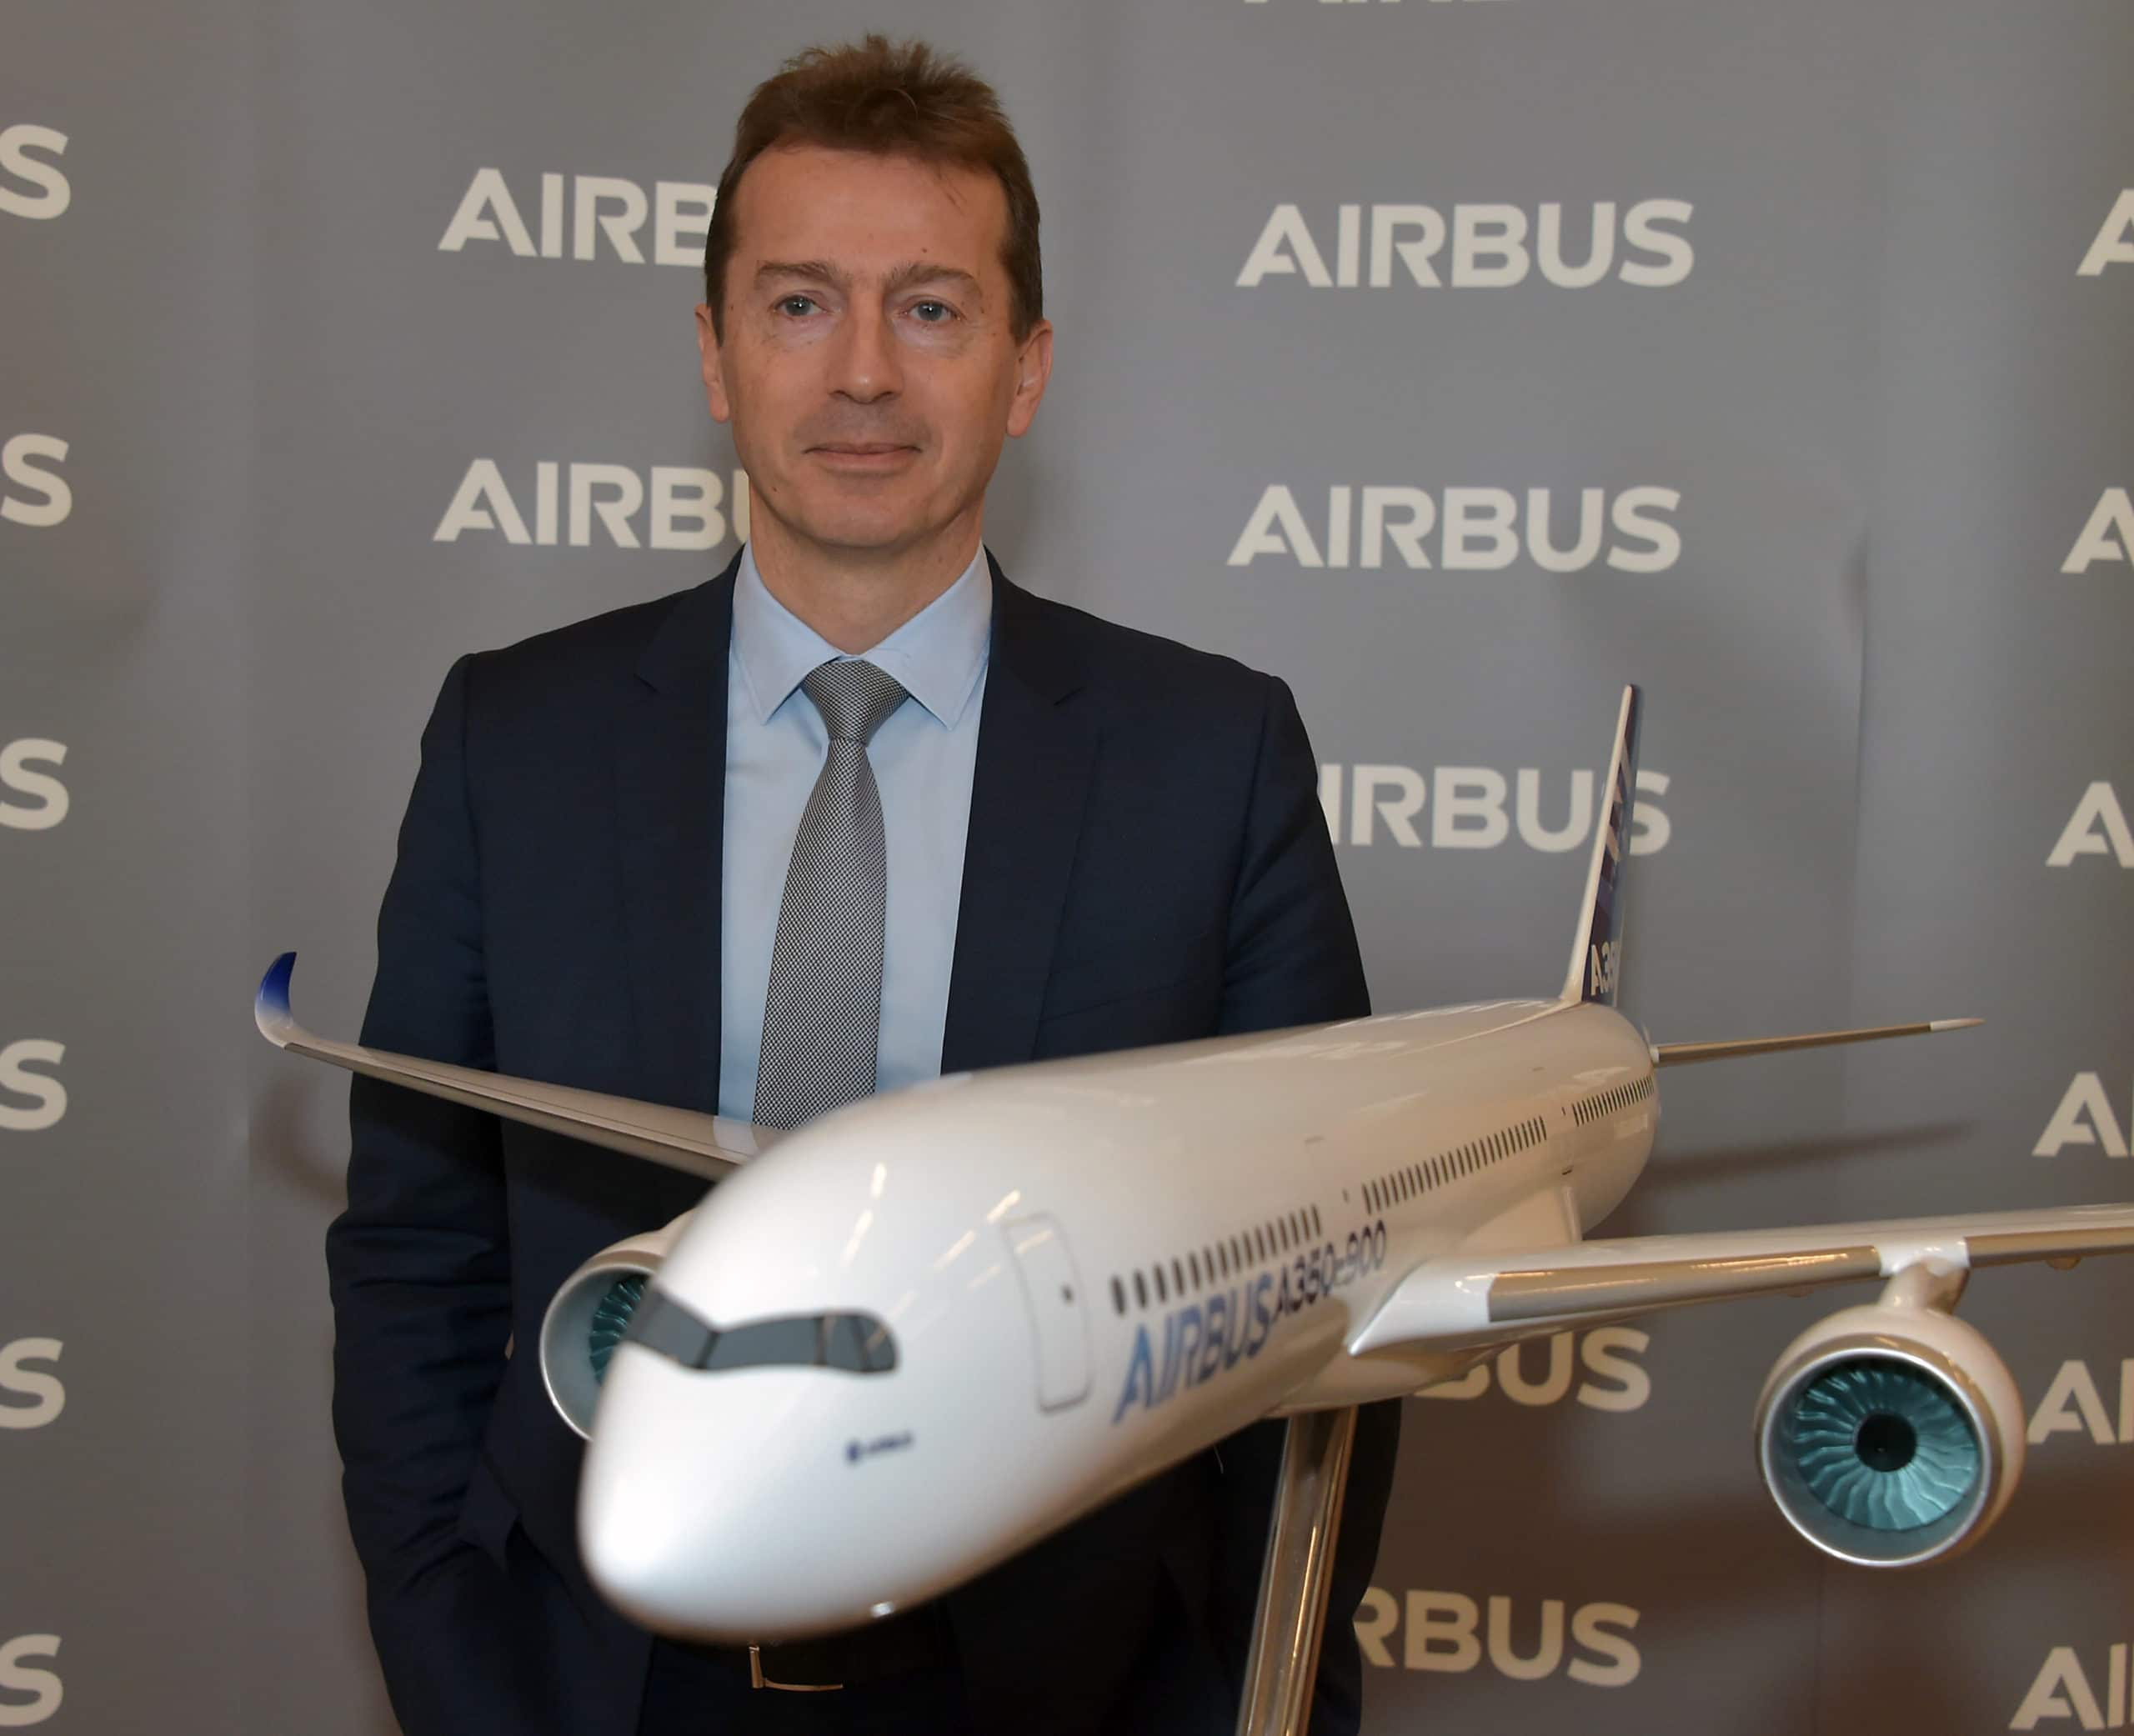 FRANCE-AIRBUS-AEROSPACE-RESULTS